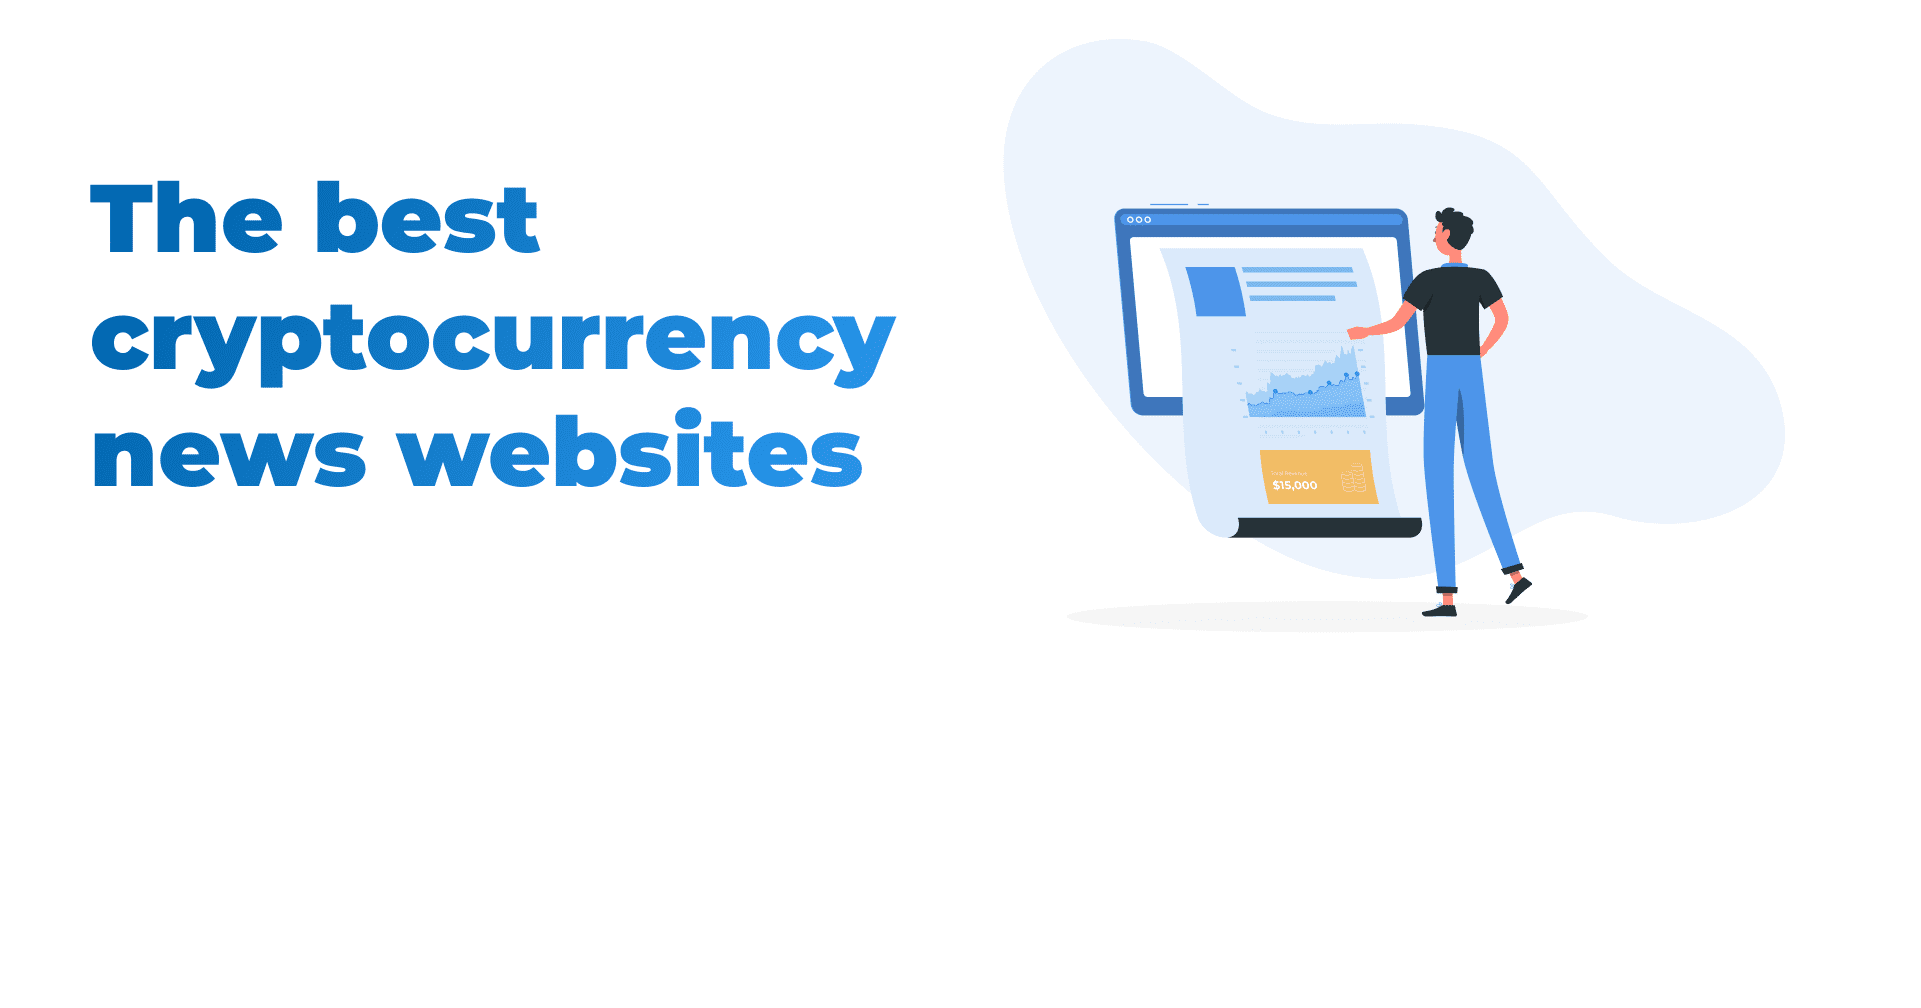 cryptocurrency websites, crypto websites, bitcoin, litecoin, ethereum, bitcoin cash, ripple, best, online platforms, CryptoSlate, Coindesk, TodayOnChain, Cointelegraph, crypto news, Bitcoin news